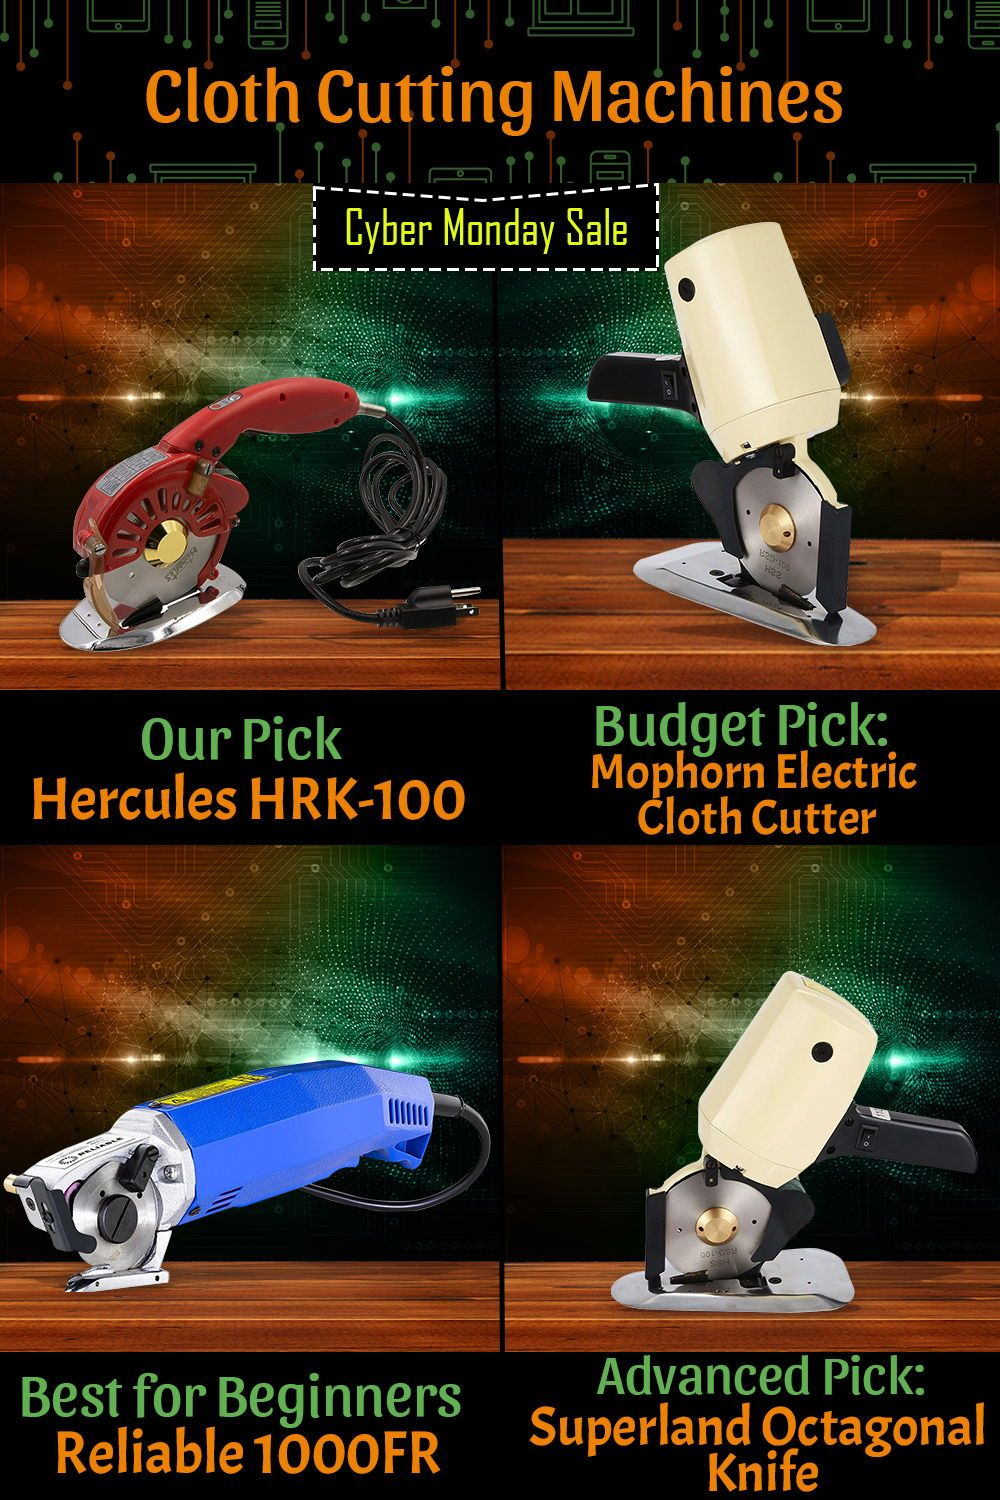 Best Cyber Monday Deals 2019 Clothes Top 10 Cloth Cutting Machines (May 2019): Reviews & Buyers Guide